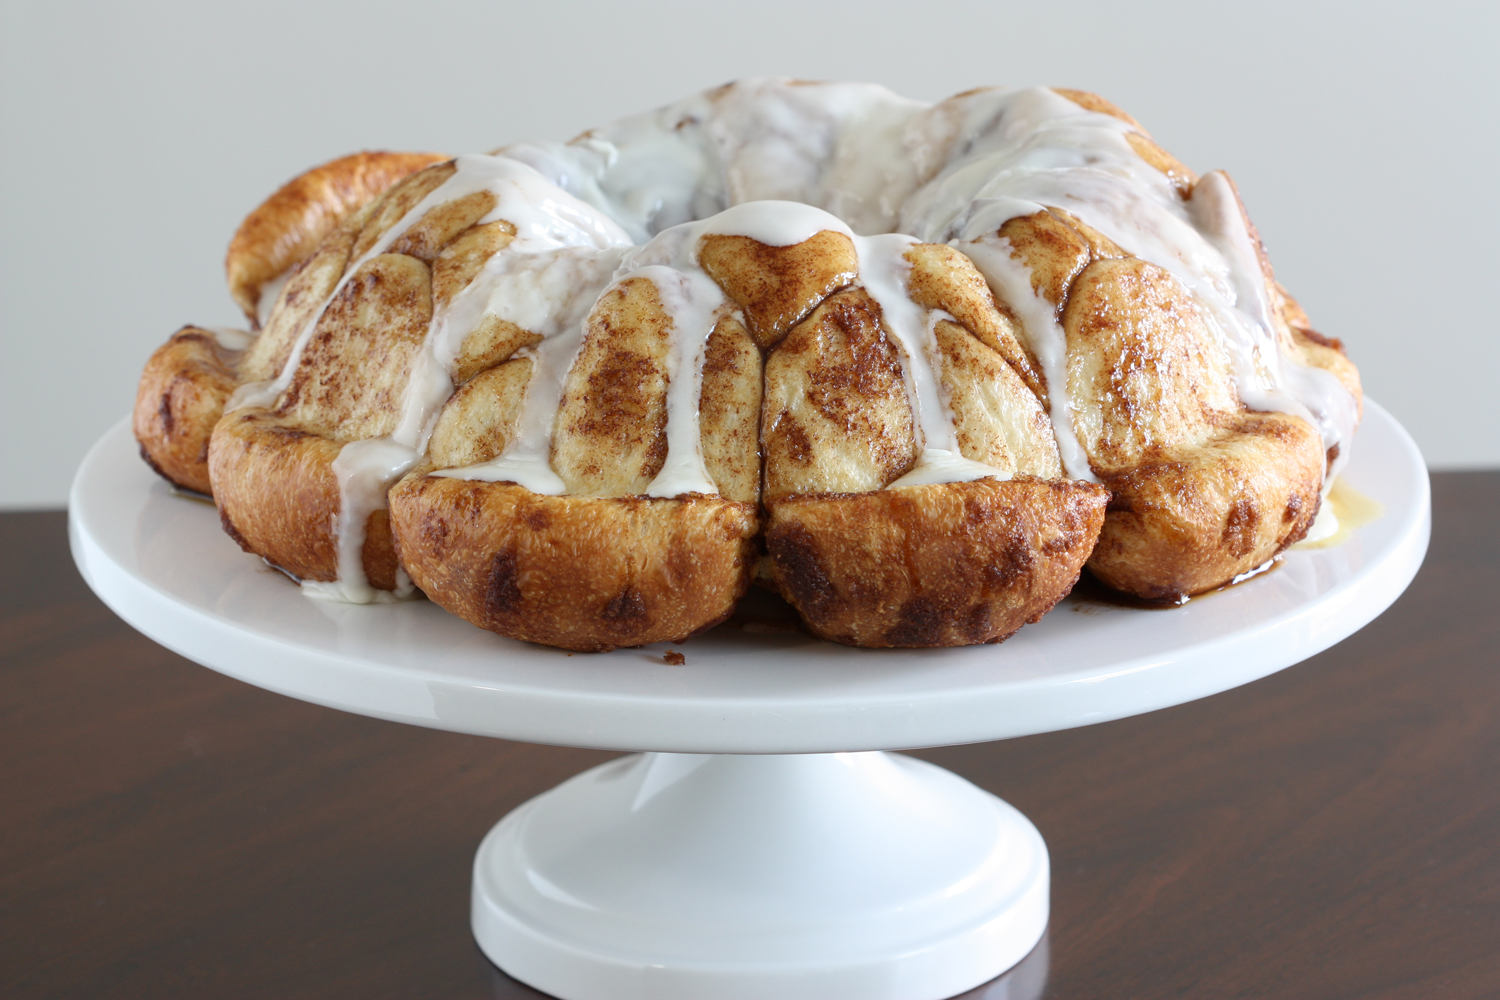 ... Winsome Girl: Overnight Monkey Bread with Cream Cheese Icing Glaze